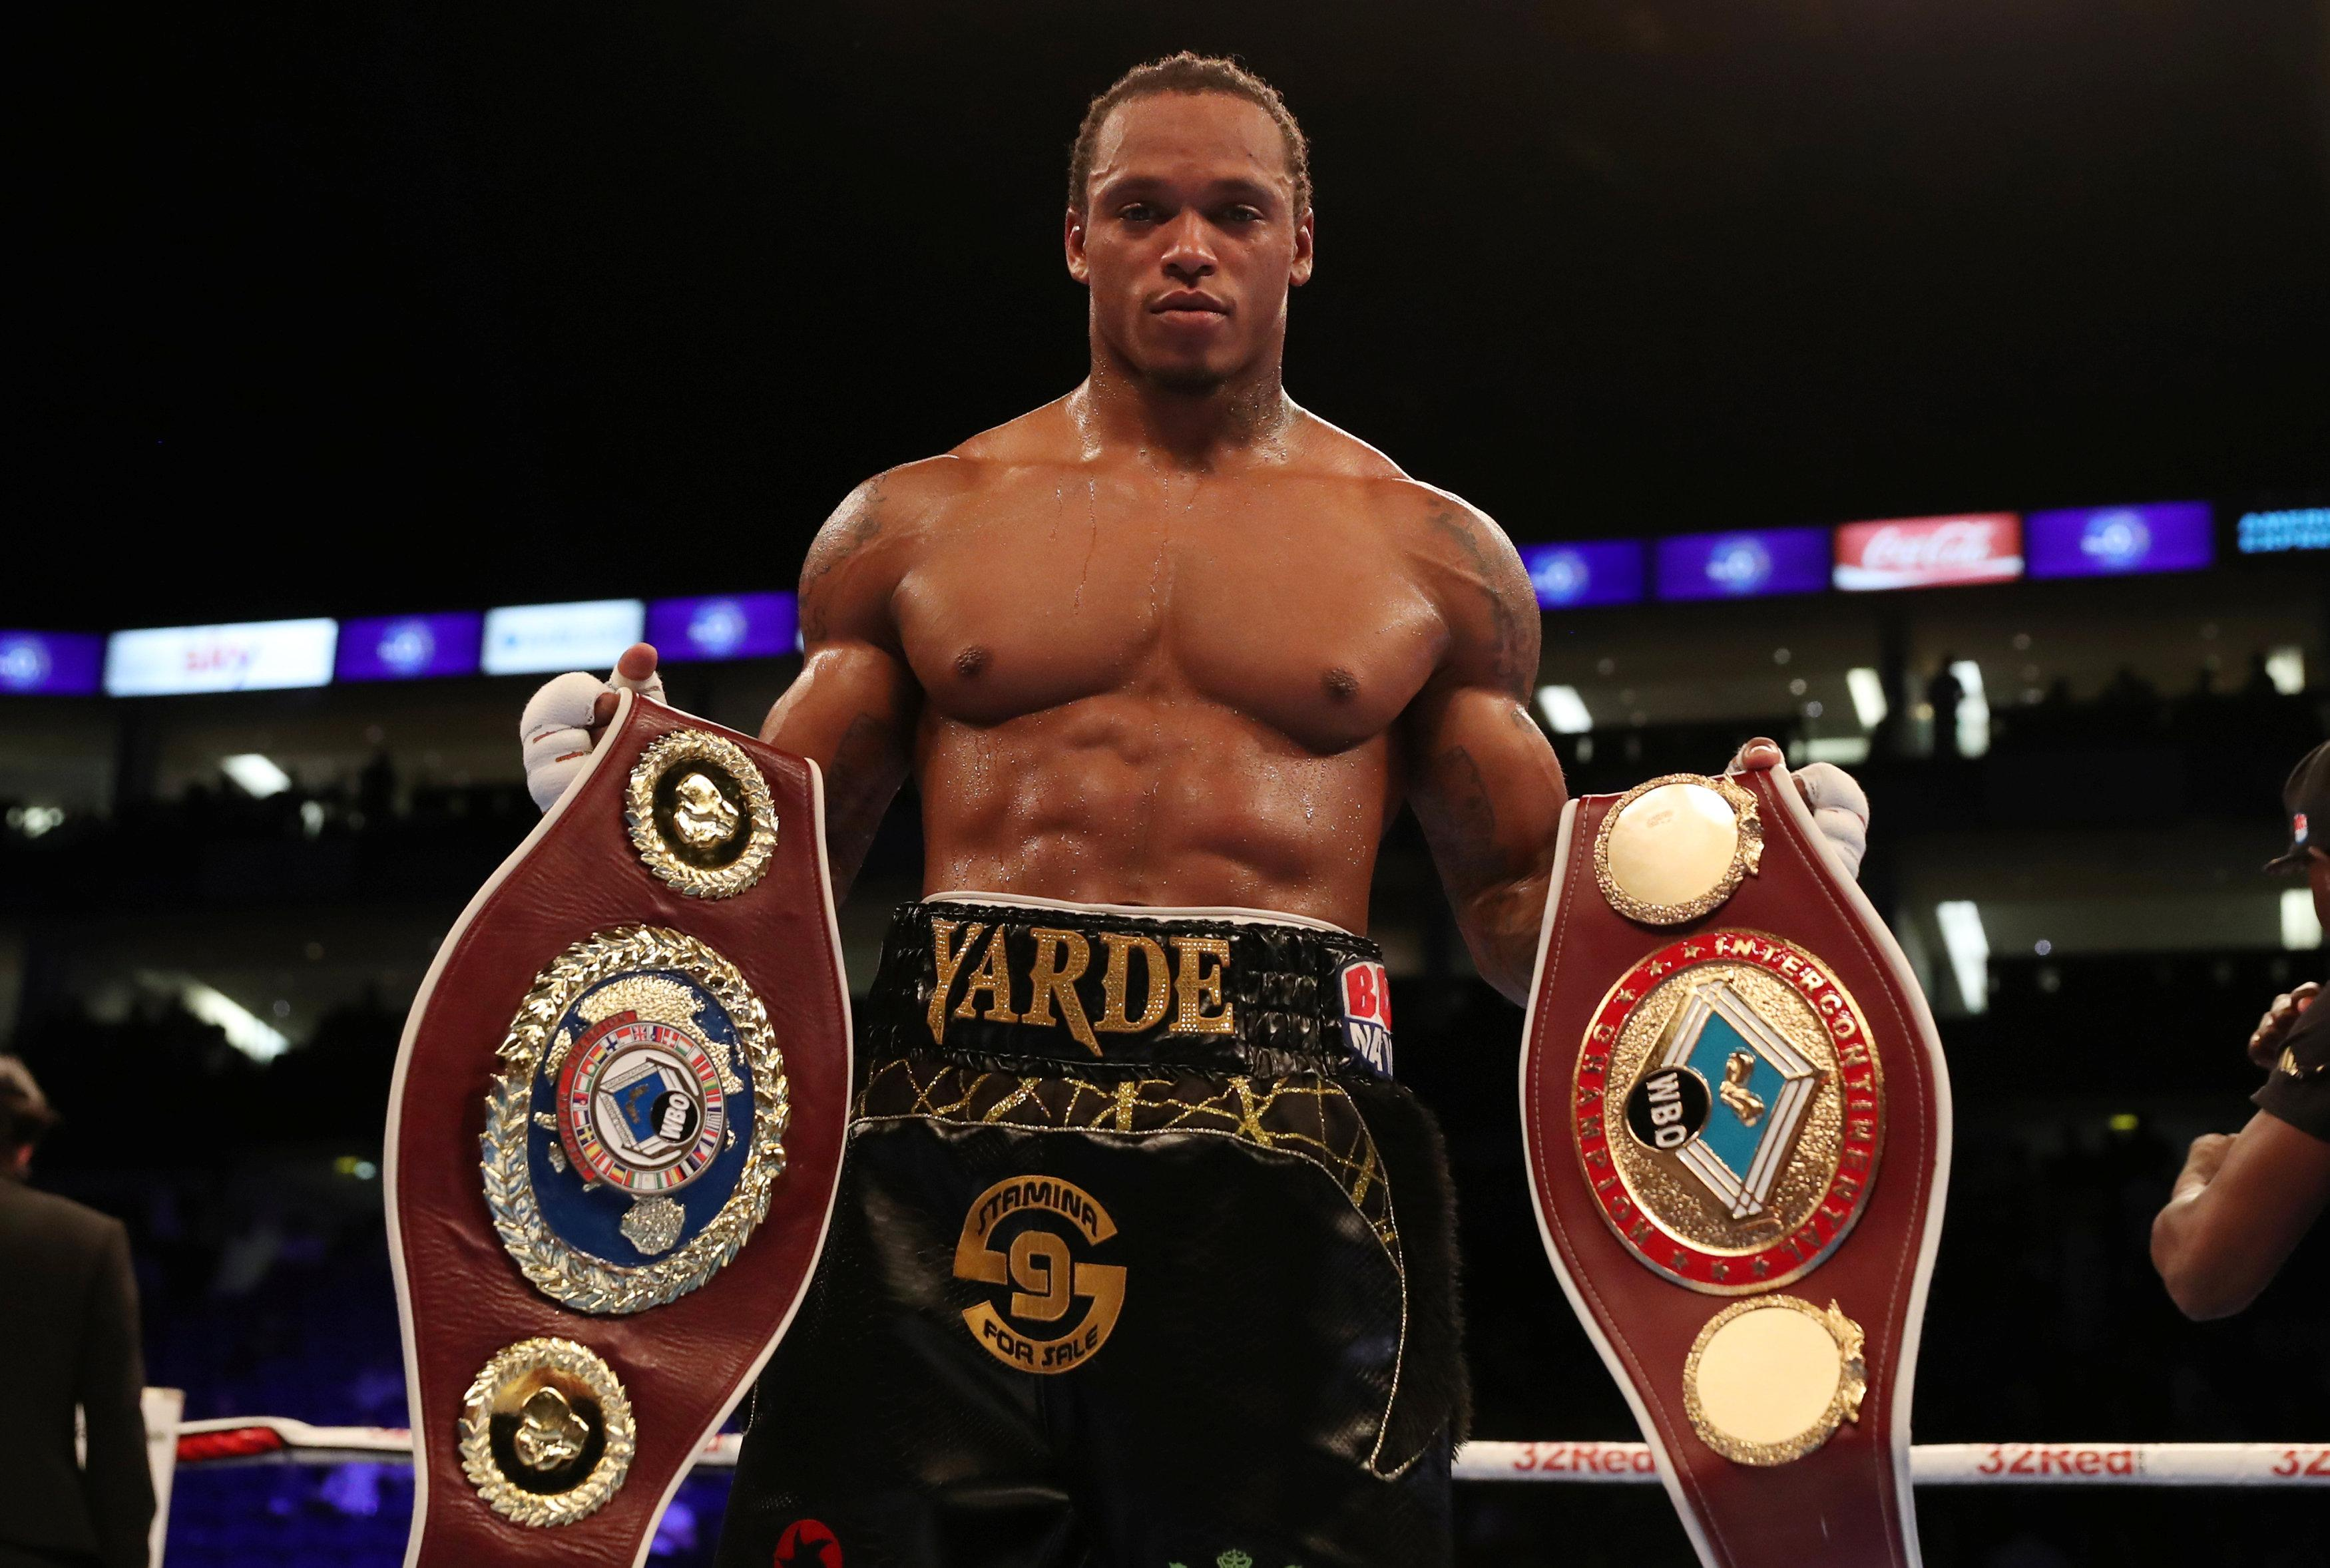 Anthony Yarde poses with the WBO European and Intercontinental Light-Heavyweight belts